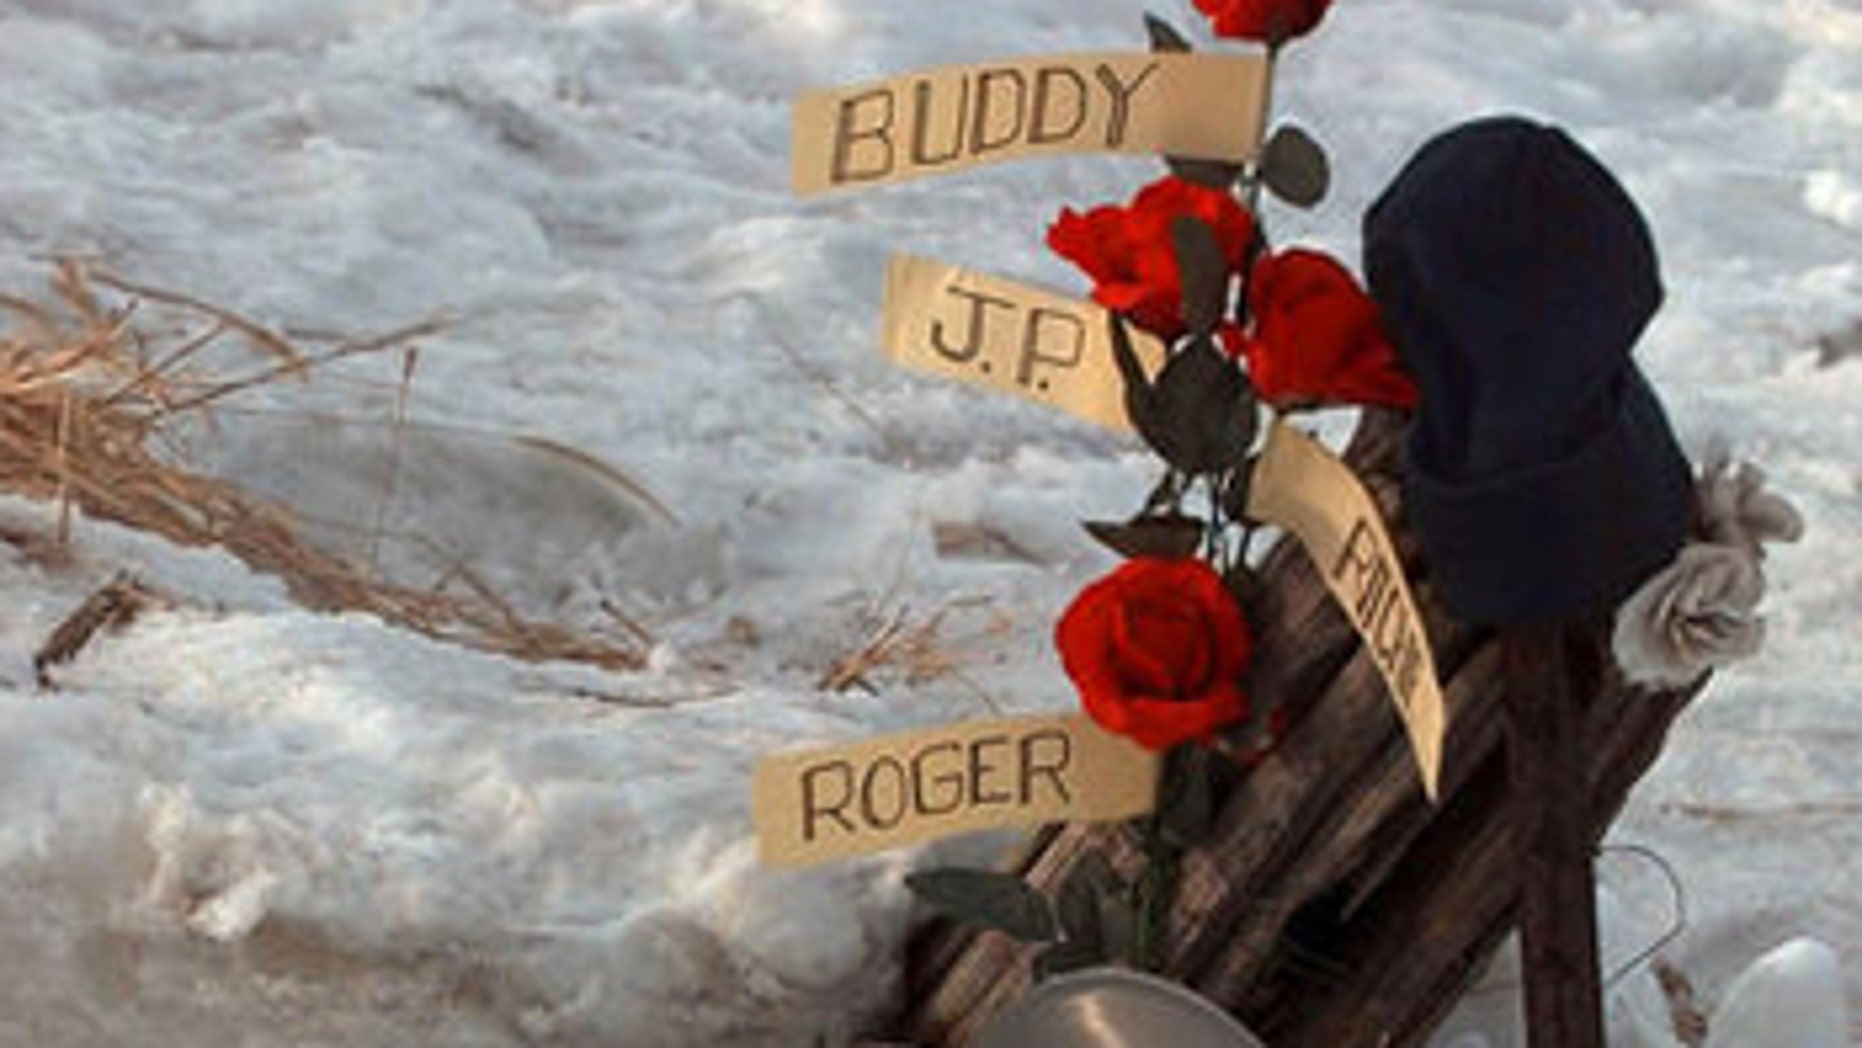 "Feb. 6, 1999: A memorial is set up where Buddy Holly, Ritchie Valens, and J.P. ""The Big Bopper"" Richardson, died in a plane crash in Clear Lake, Iowa."